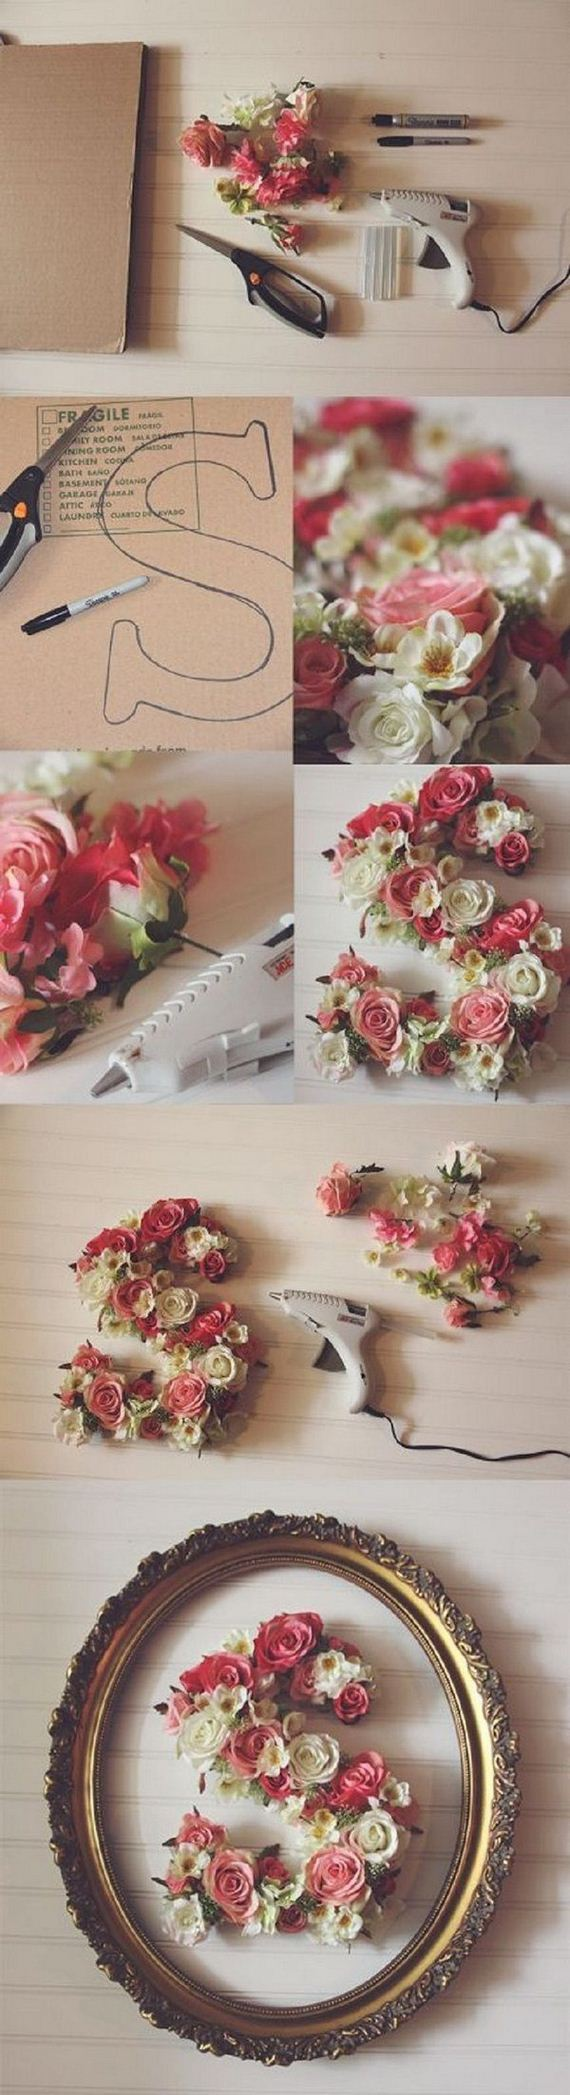 13-diy-letter-ideas-tutorials